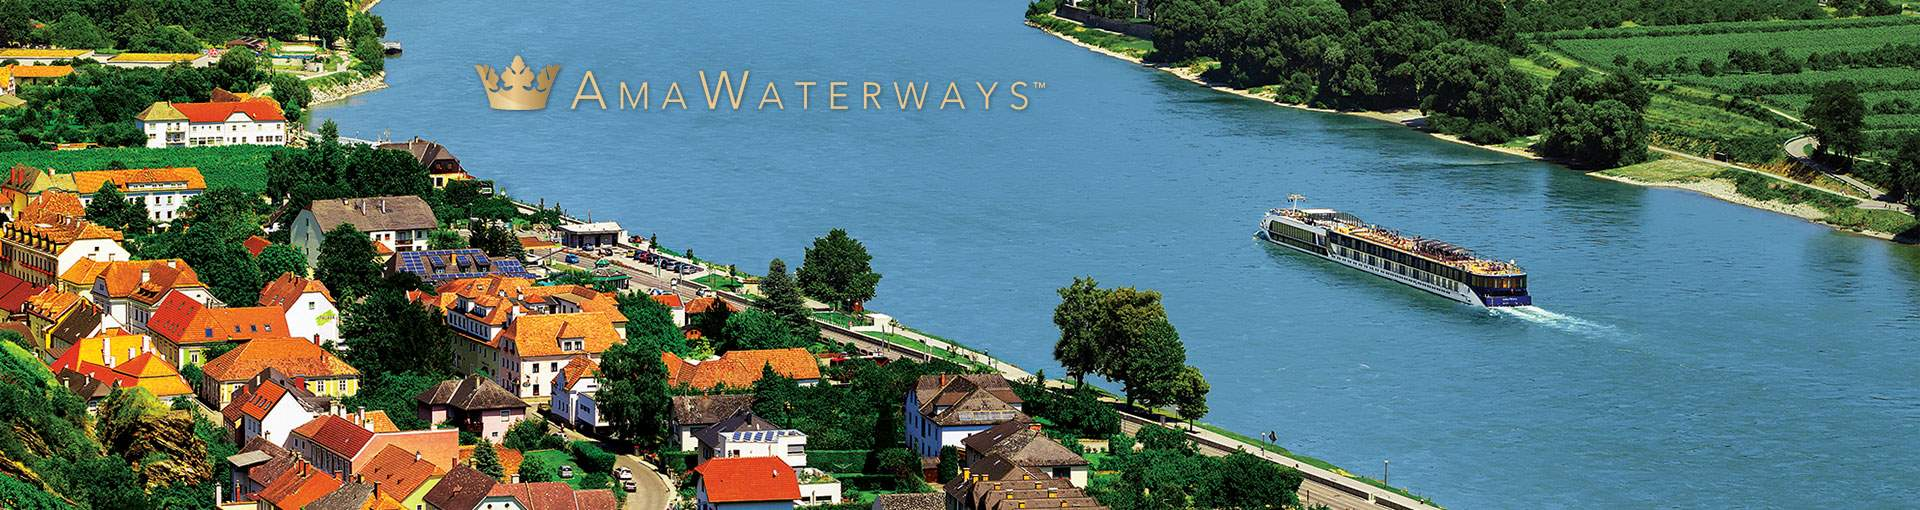 AmaWaterways River Cruise Line